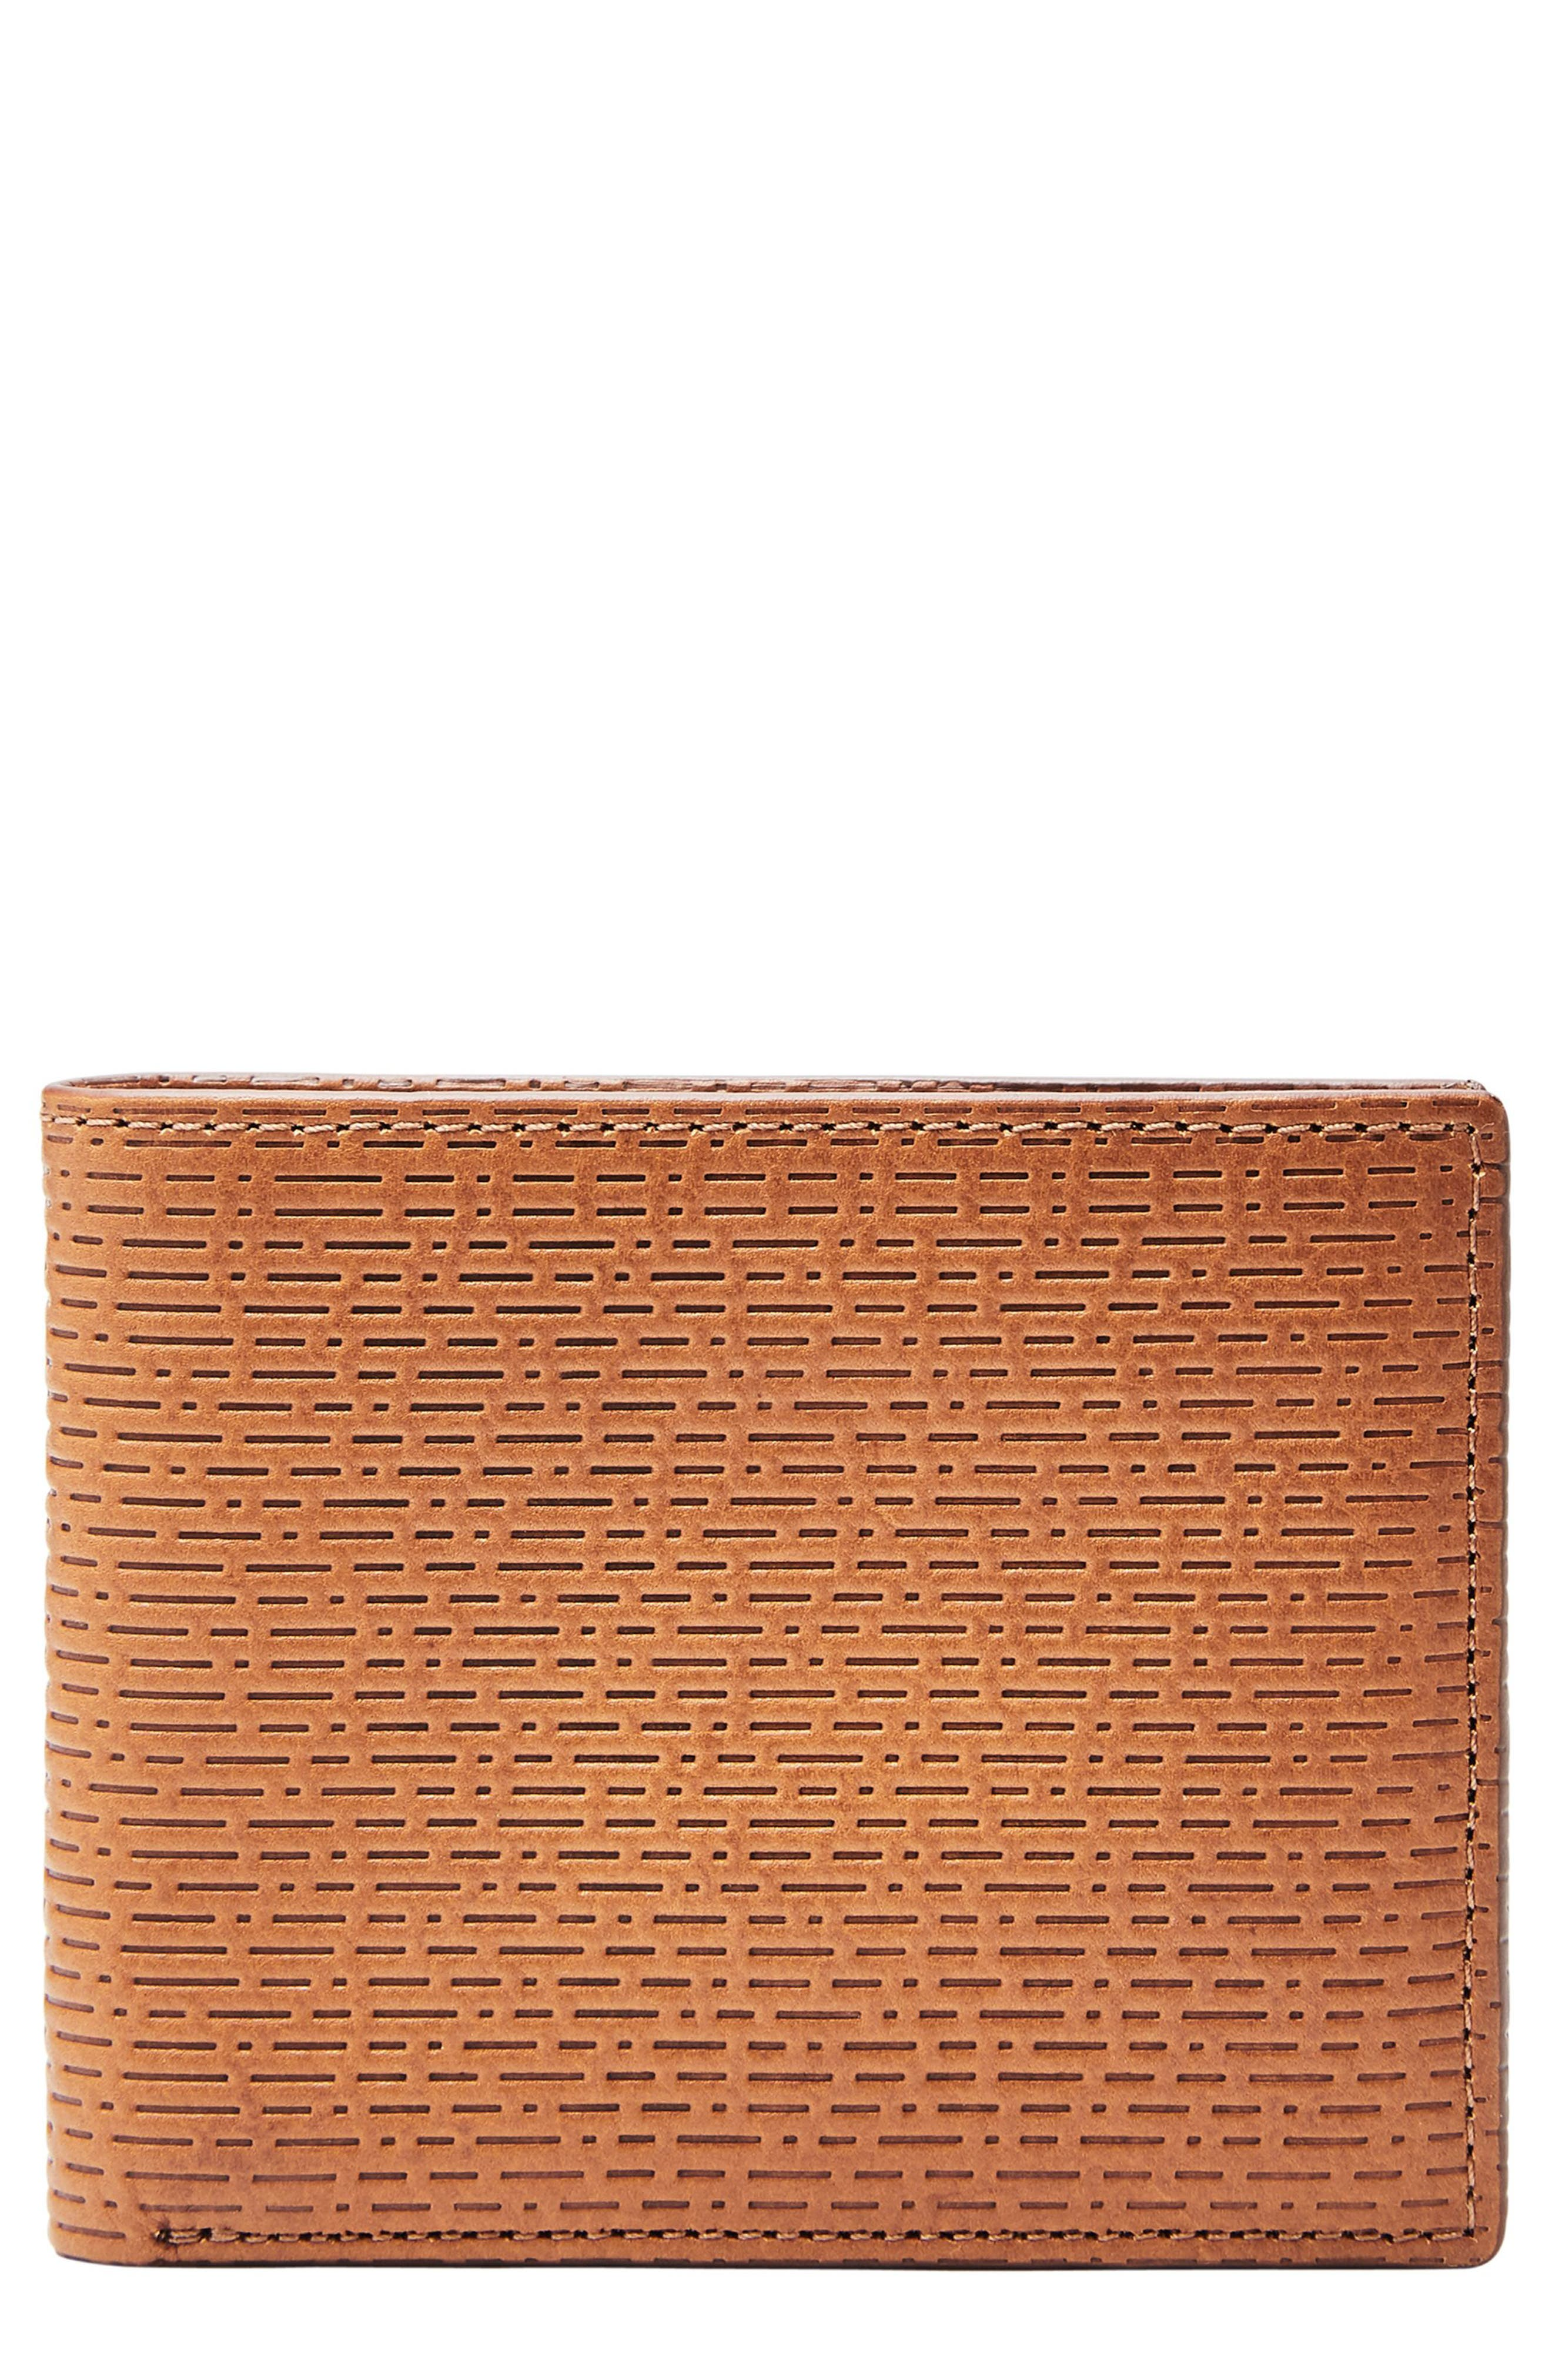 Coby Leather Wallet,                         Main,                         color,